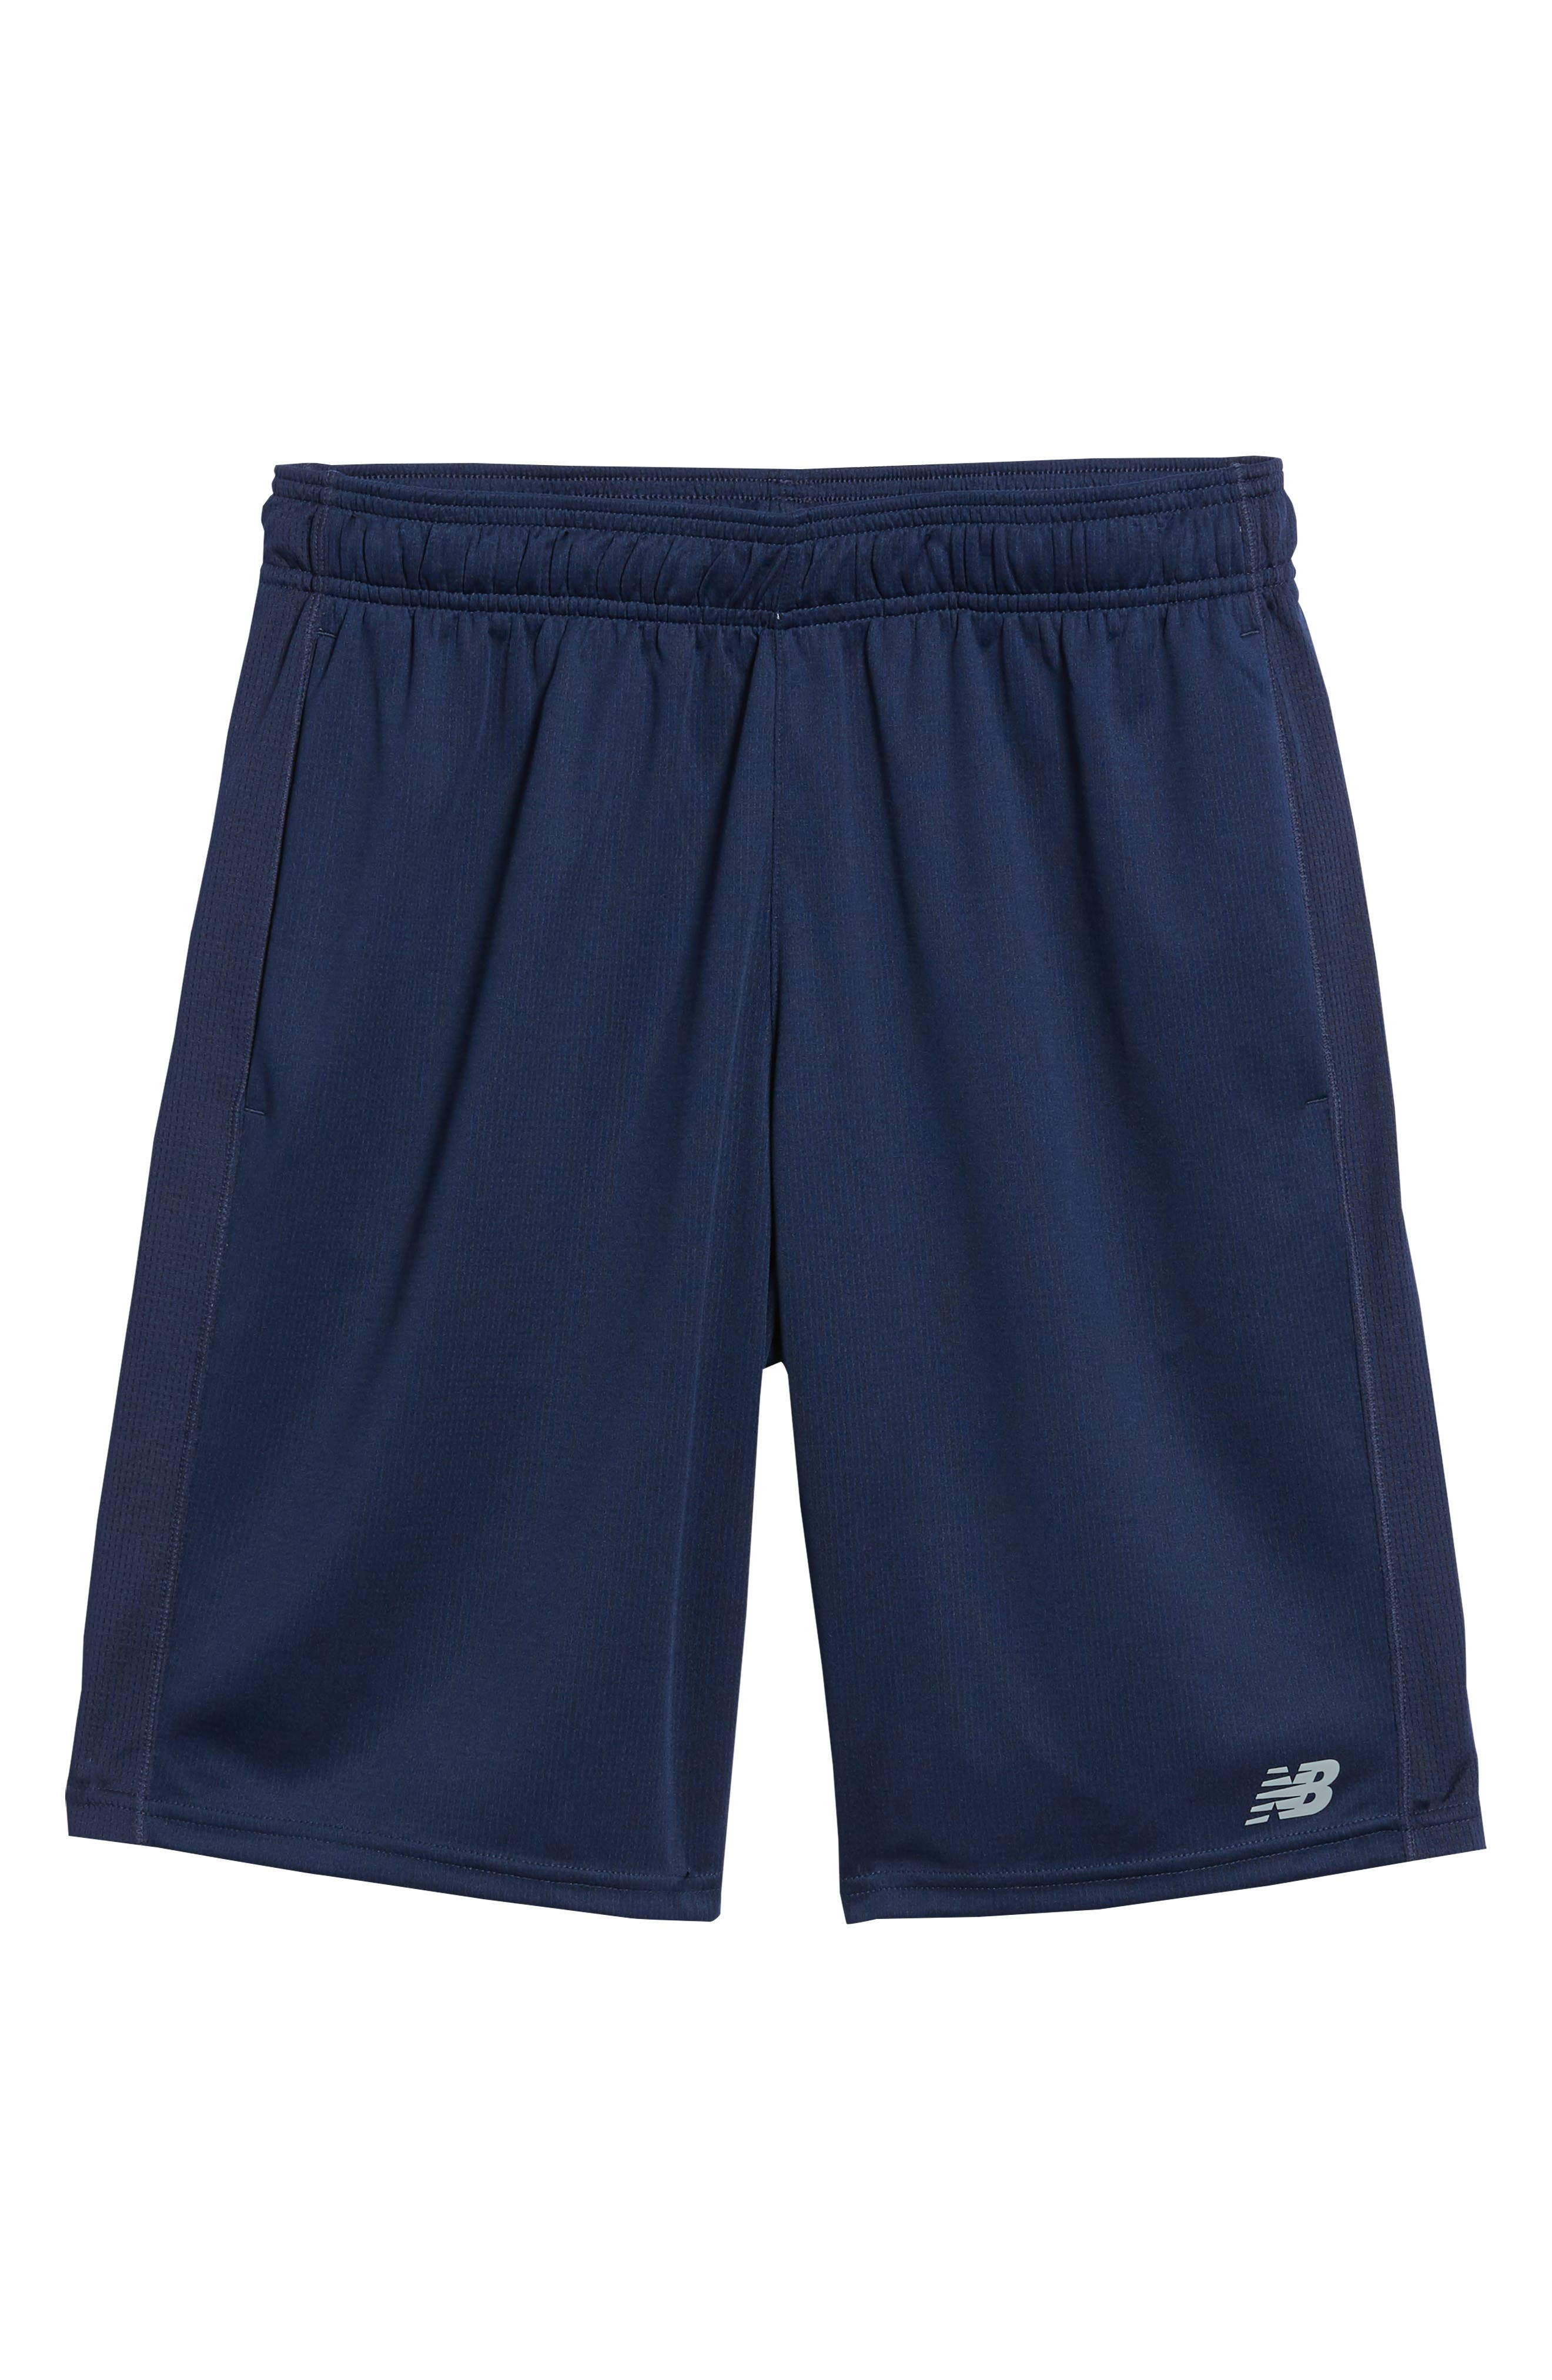 Versa Shorts,                             Alternate thumbnail 6, color,                             PIGMENT